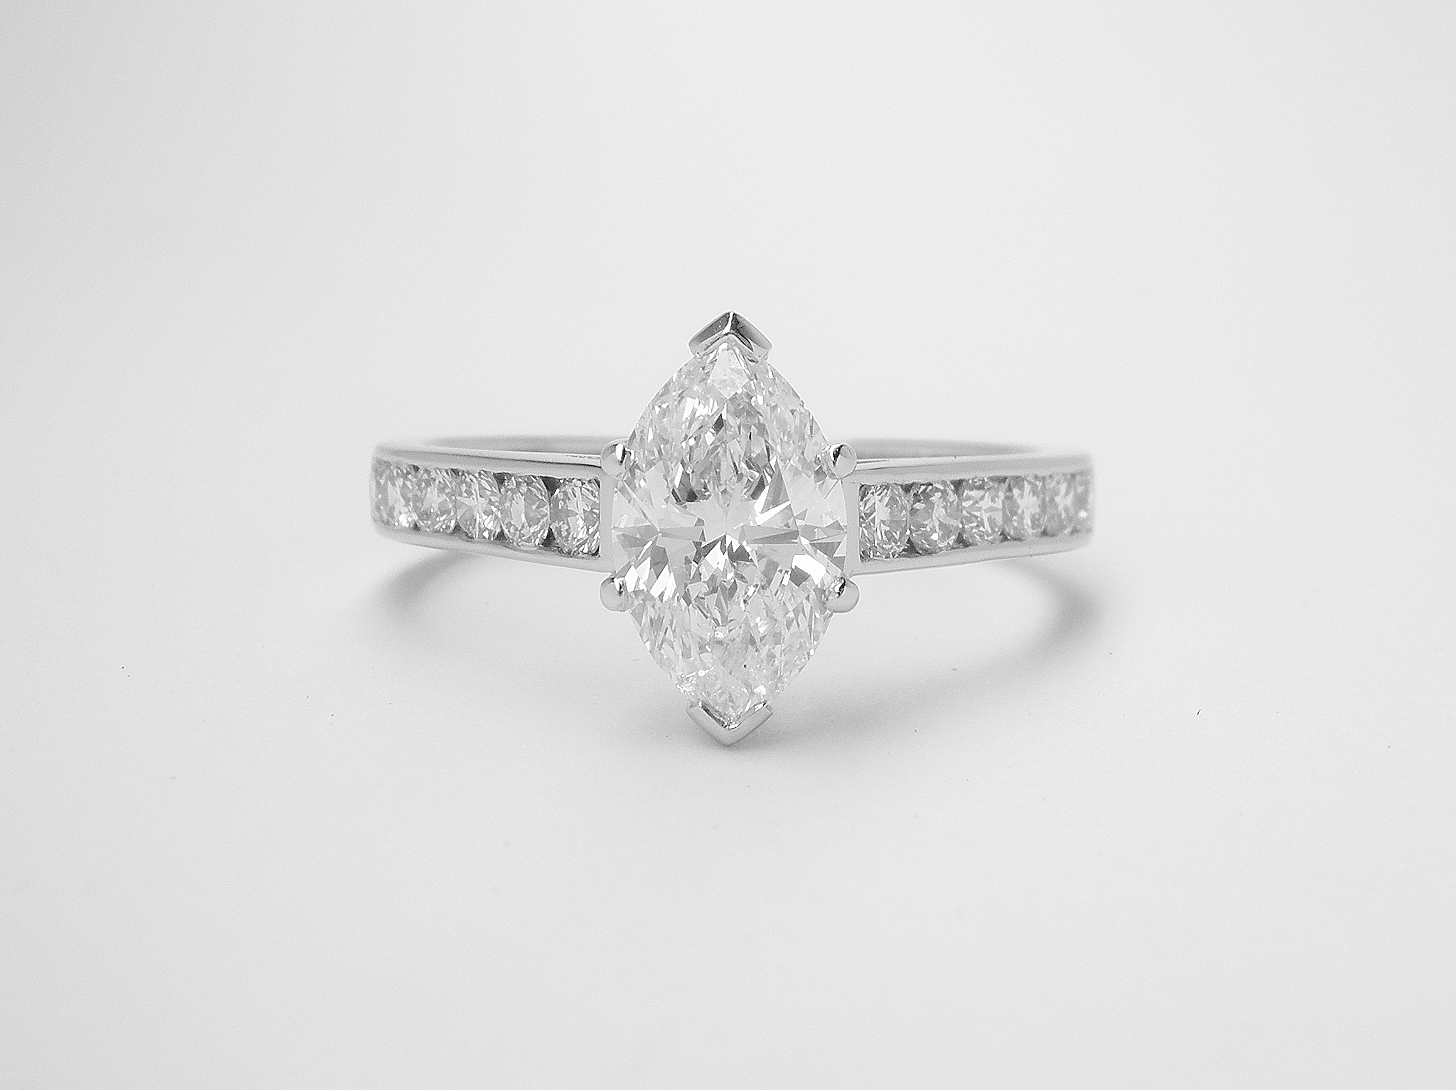 A single stone marquise diamond ring mounted in platinum with 6 round brilliant cut diamonds channel set into each shoulder.